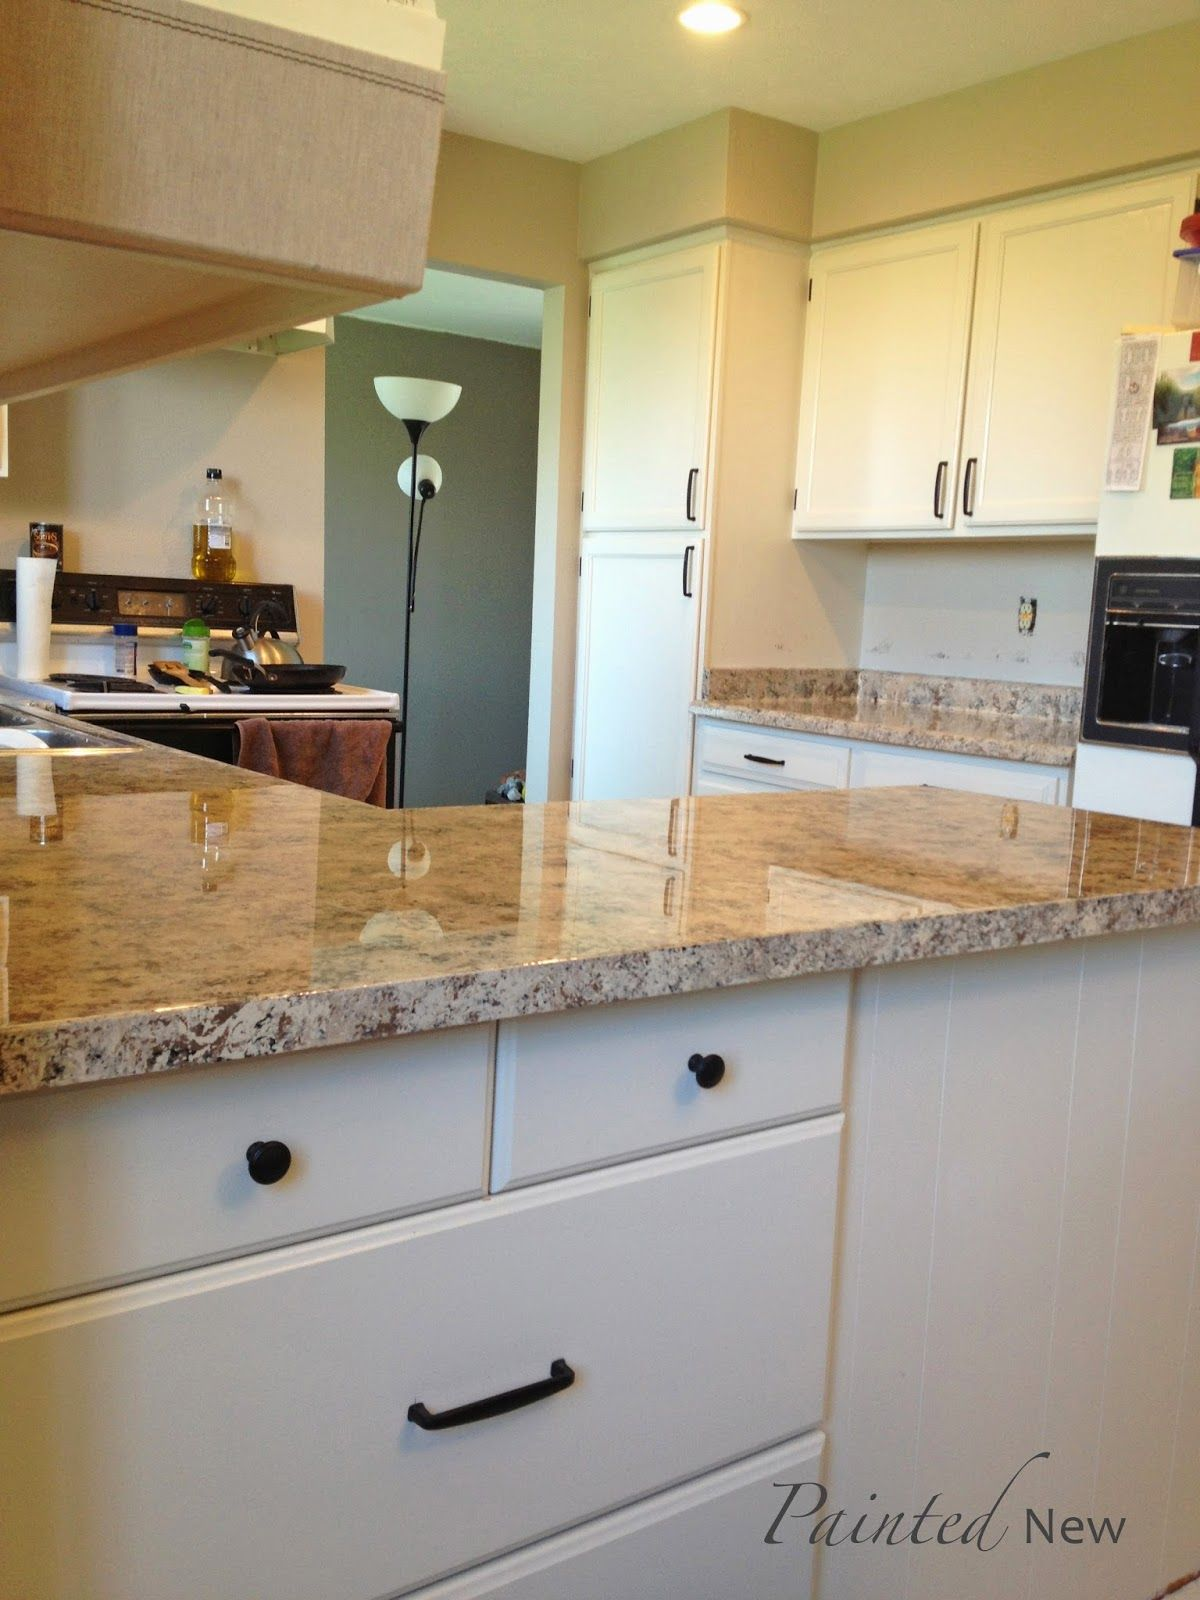 Painted New Our Diy Kitchen Makeover Kitchen Diy Makeover Cheap Kitchen Makeover Kitchen Makeover